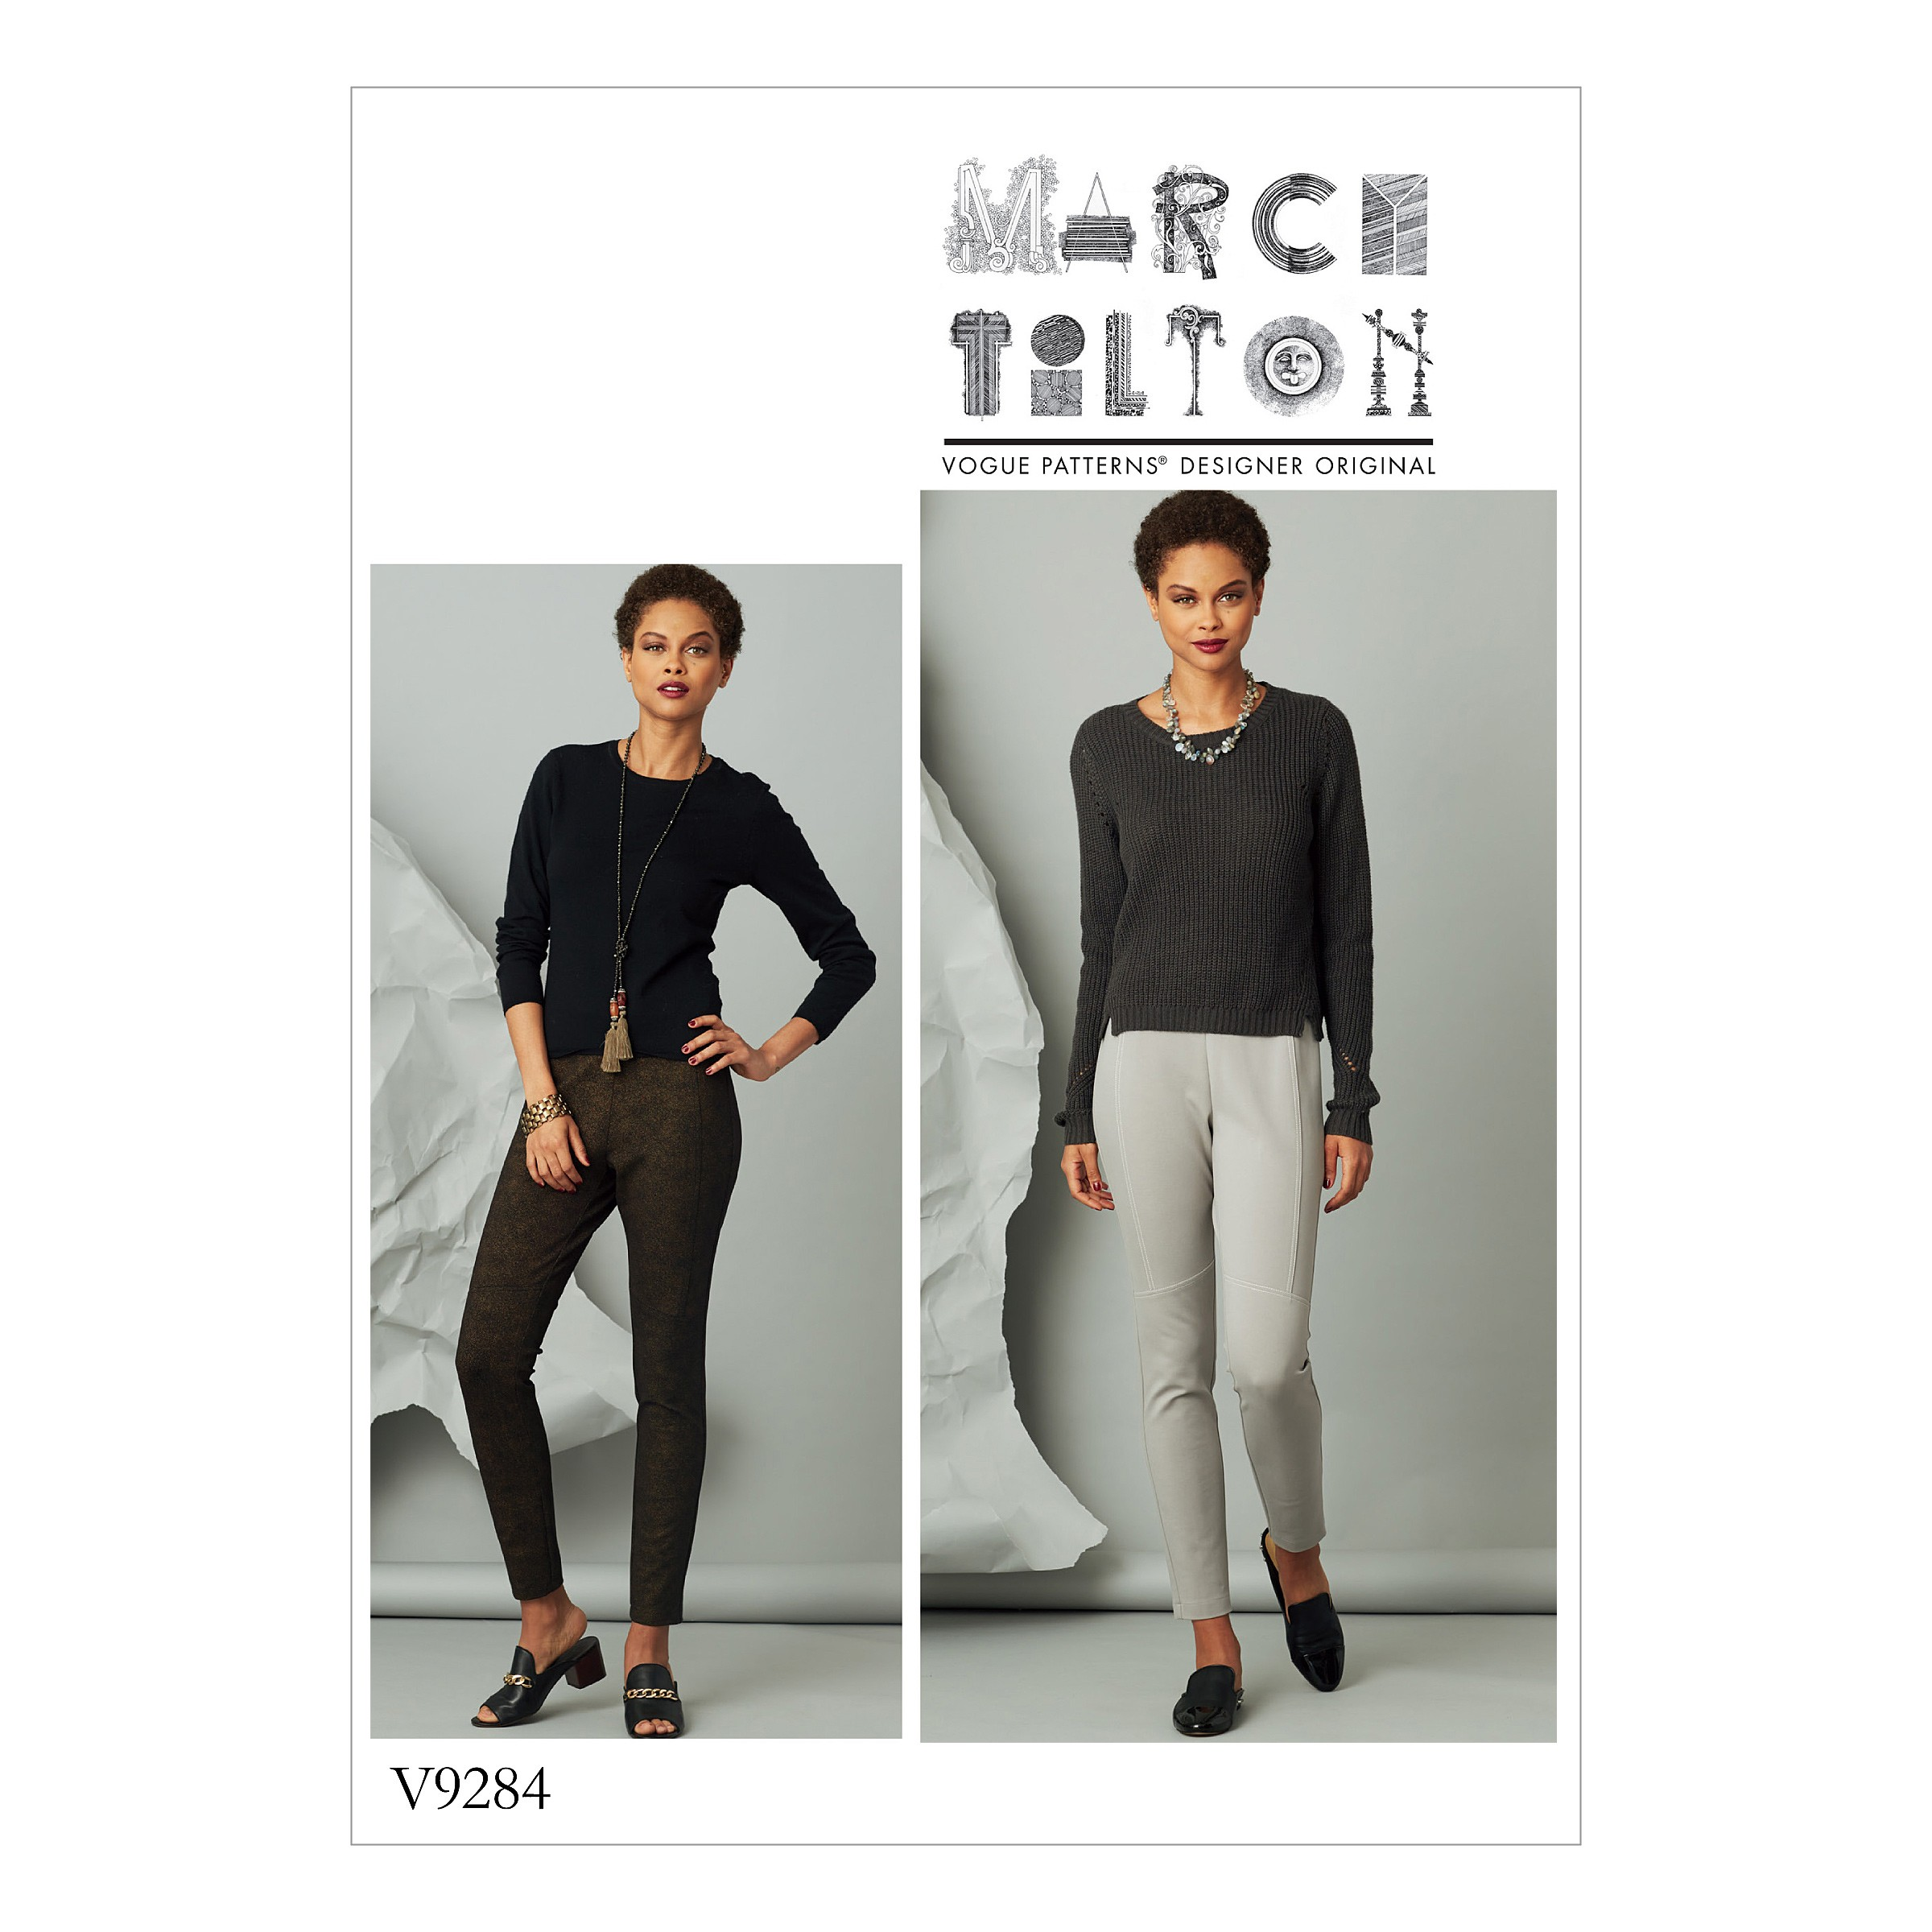 Vogue Sewing Pattern V9284 Women's Seam Detail Knit Trousers